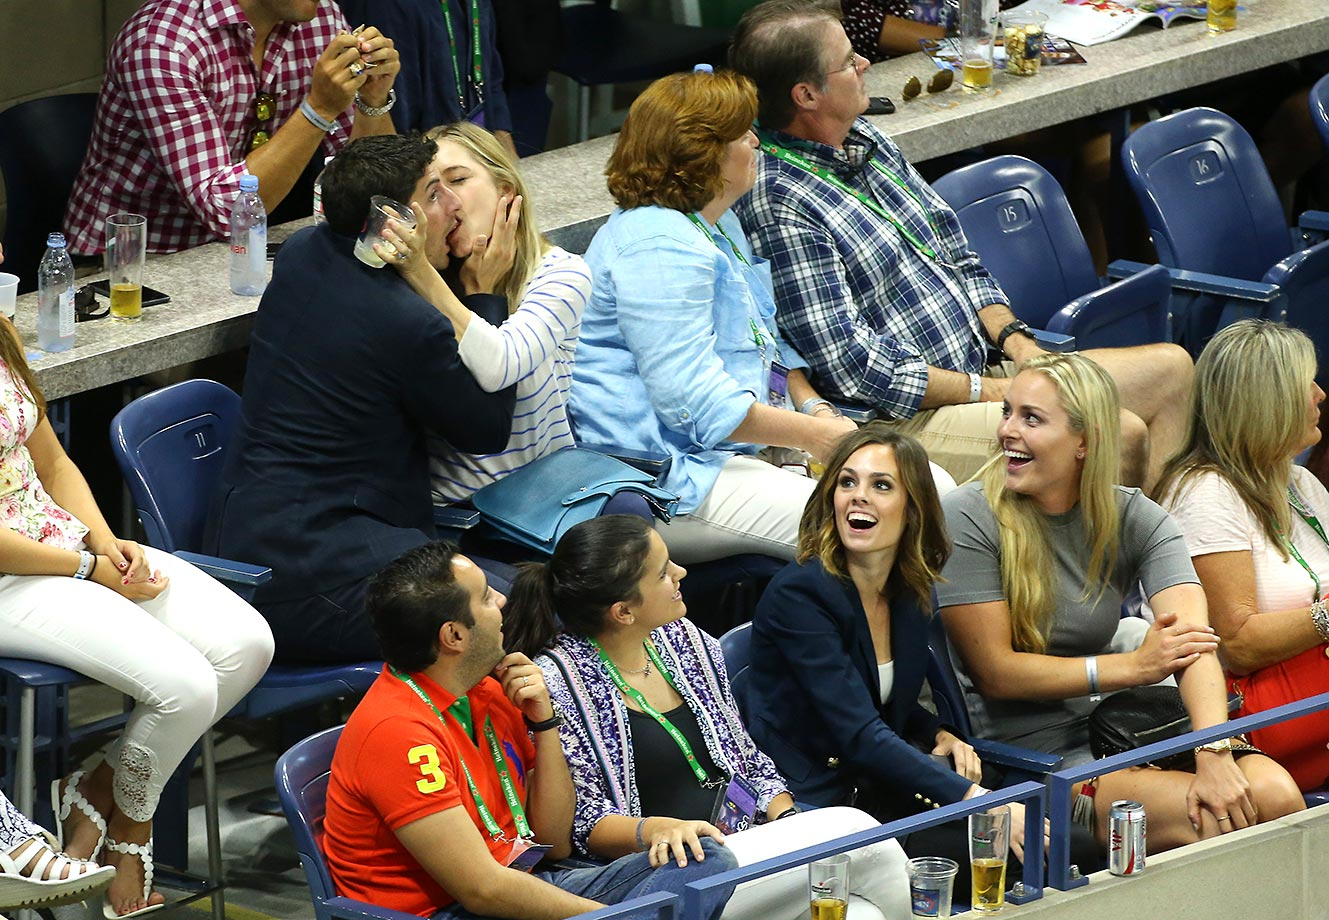 Jason Biggs and his wife, Jenny Mollen, playing it up for the U.S. Open 'kiss cam' while Lindsey Vonn (bottom right) laughs.